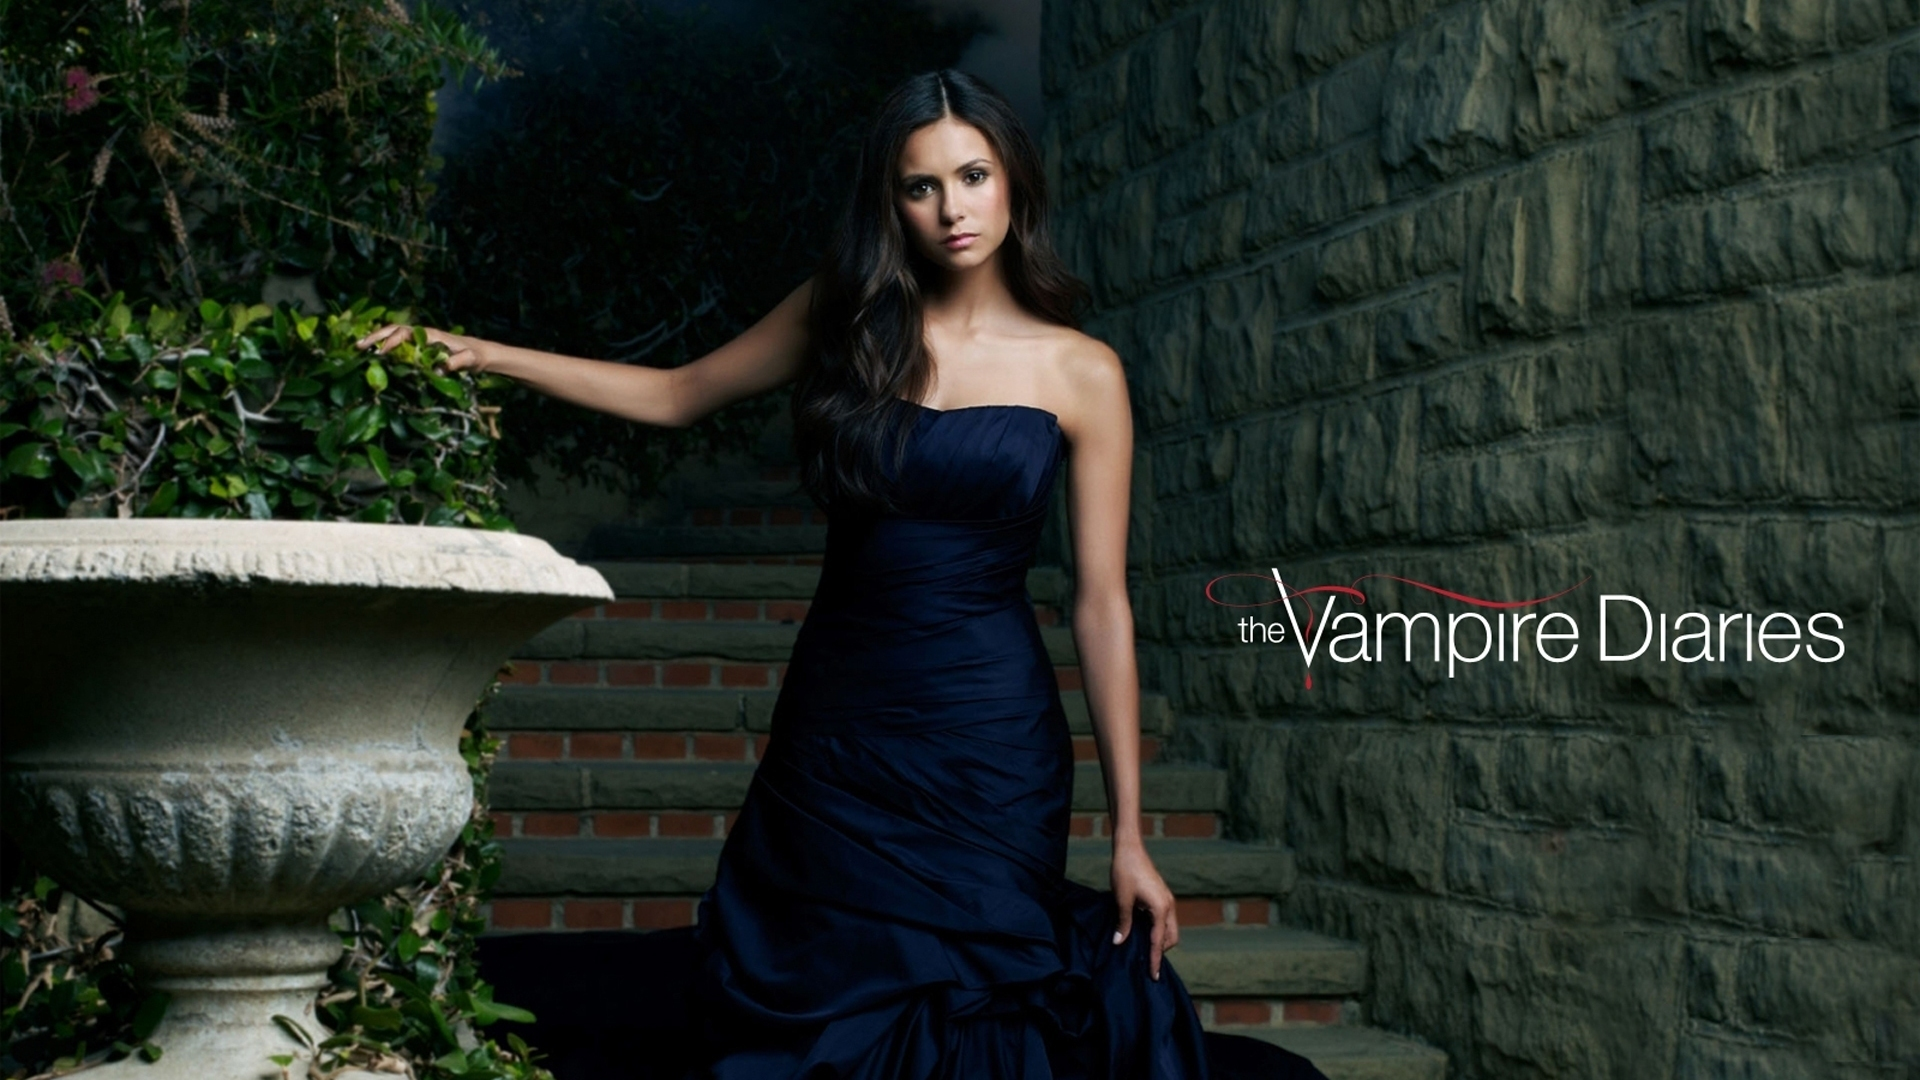 nina dobrev full hd - photo #27